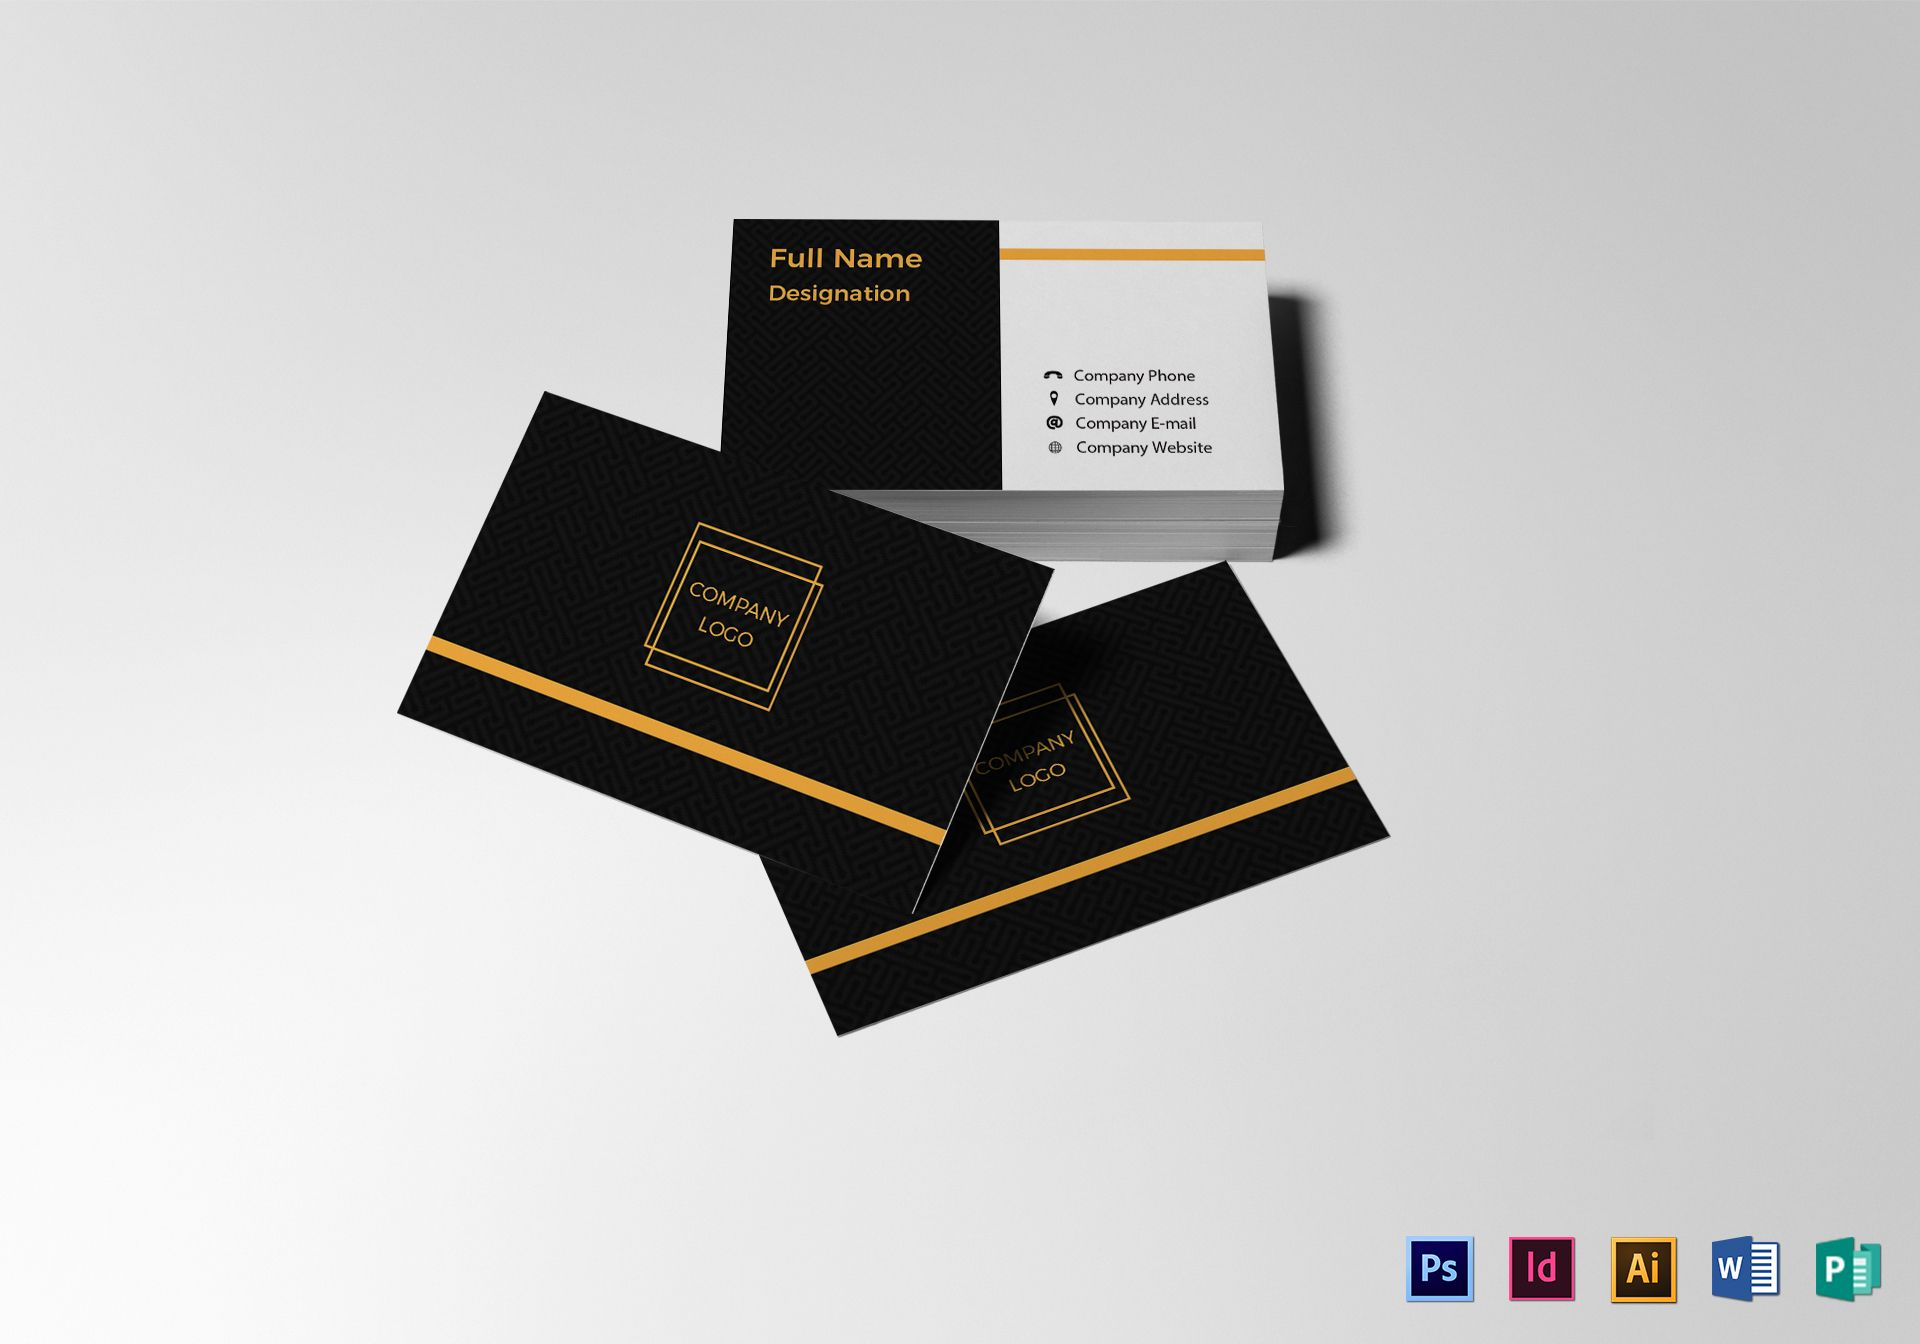 003 Blank Business Card Template Psd Remarkable Ideas Free